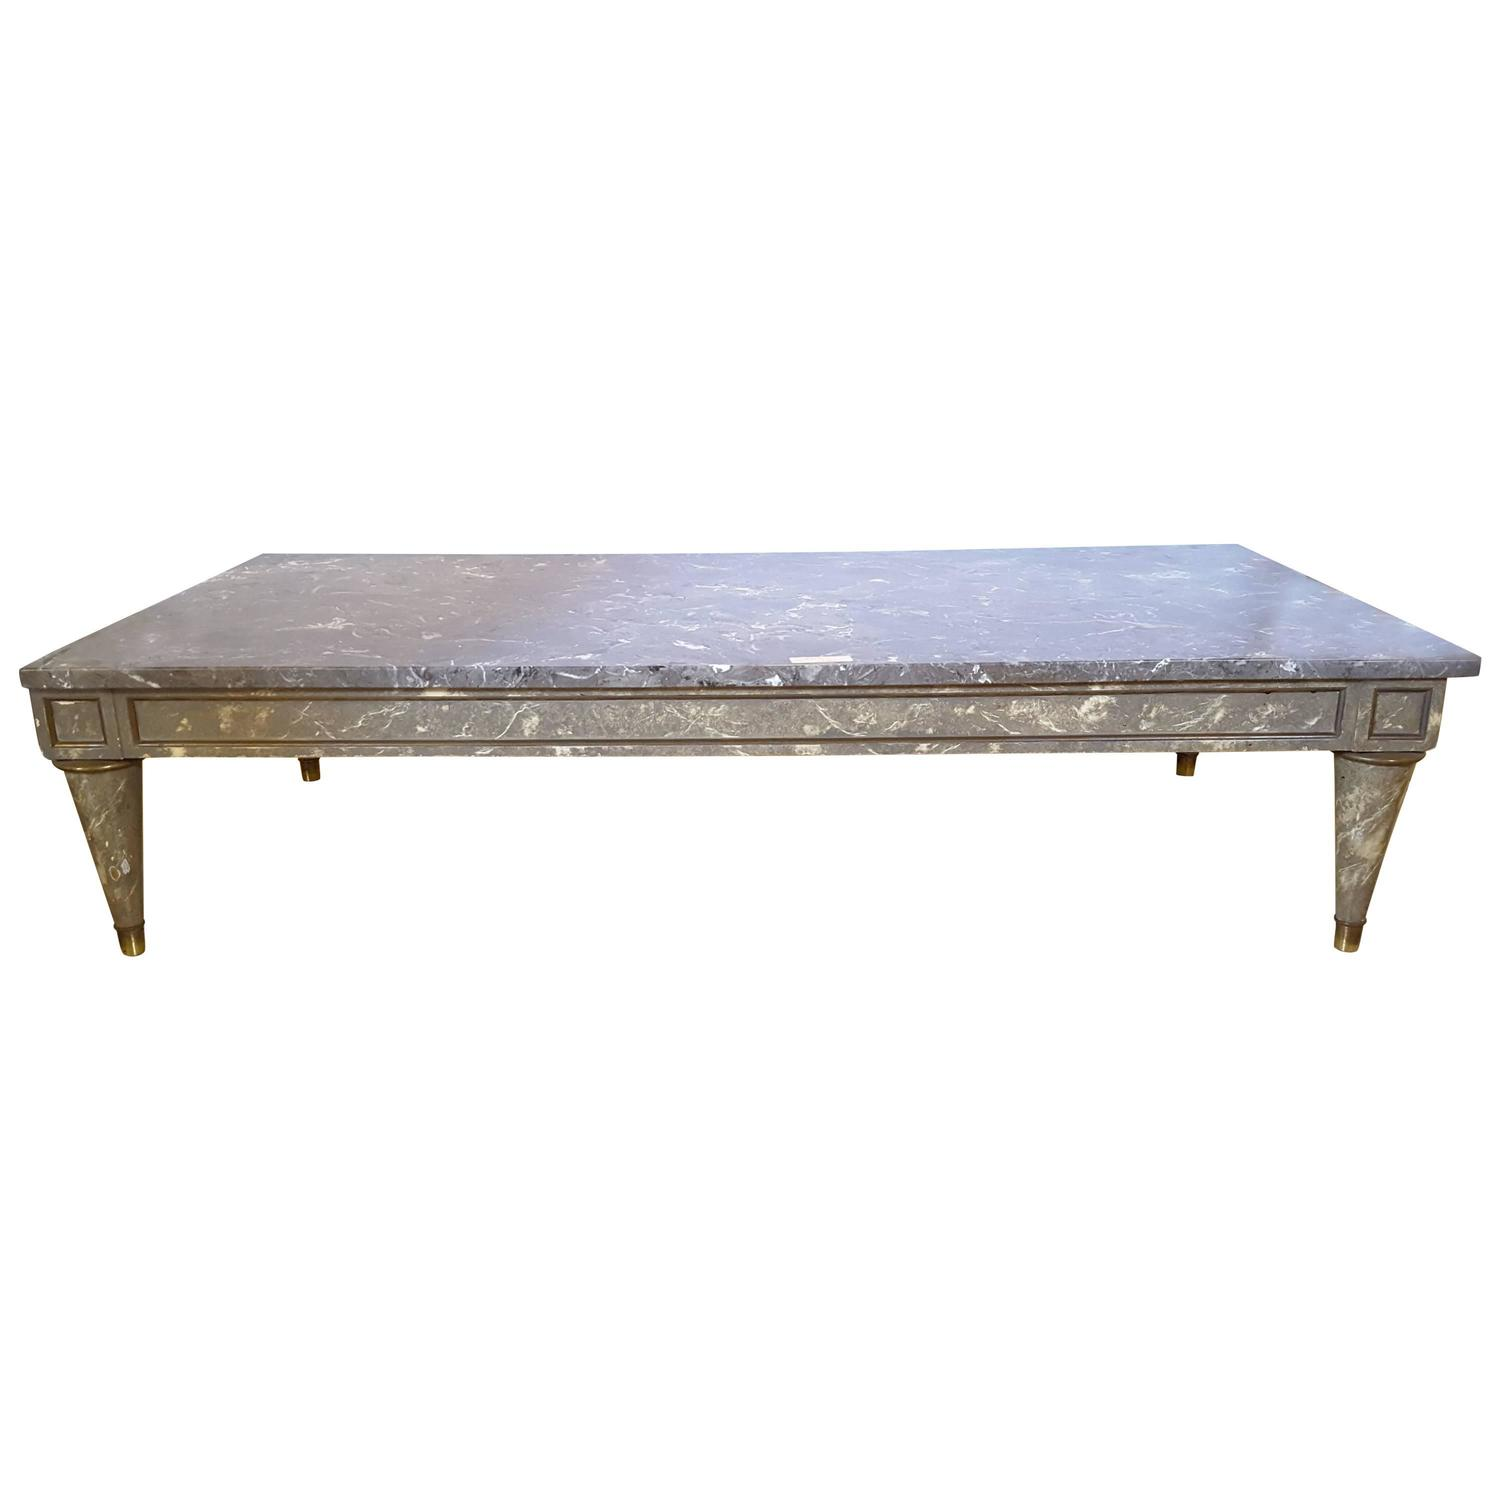 Marble Coffee Table For Sale Singapore: Faux Marble-Top Coffee Table For Sale At 1stdibs